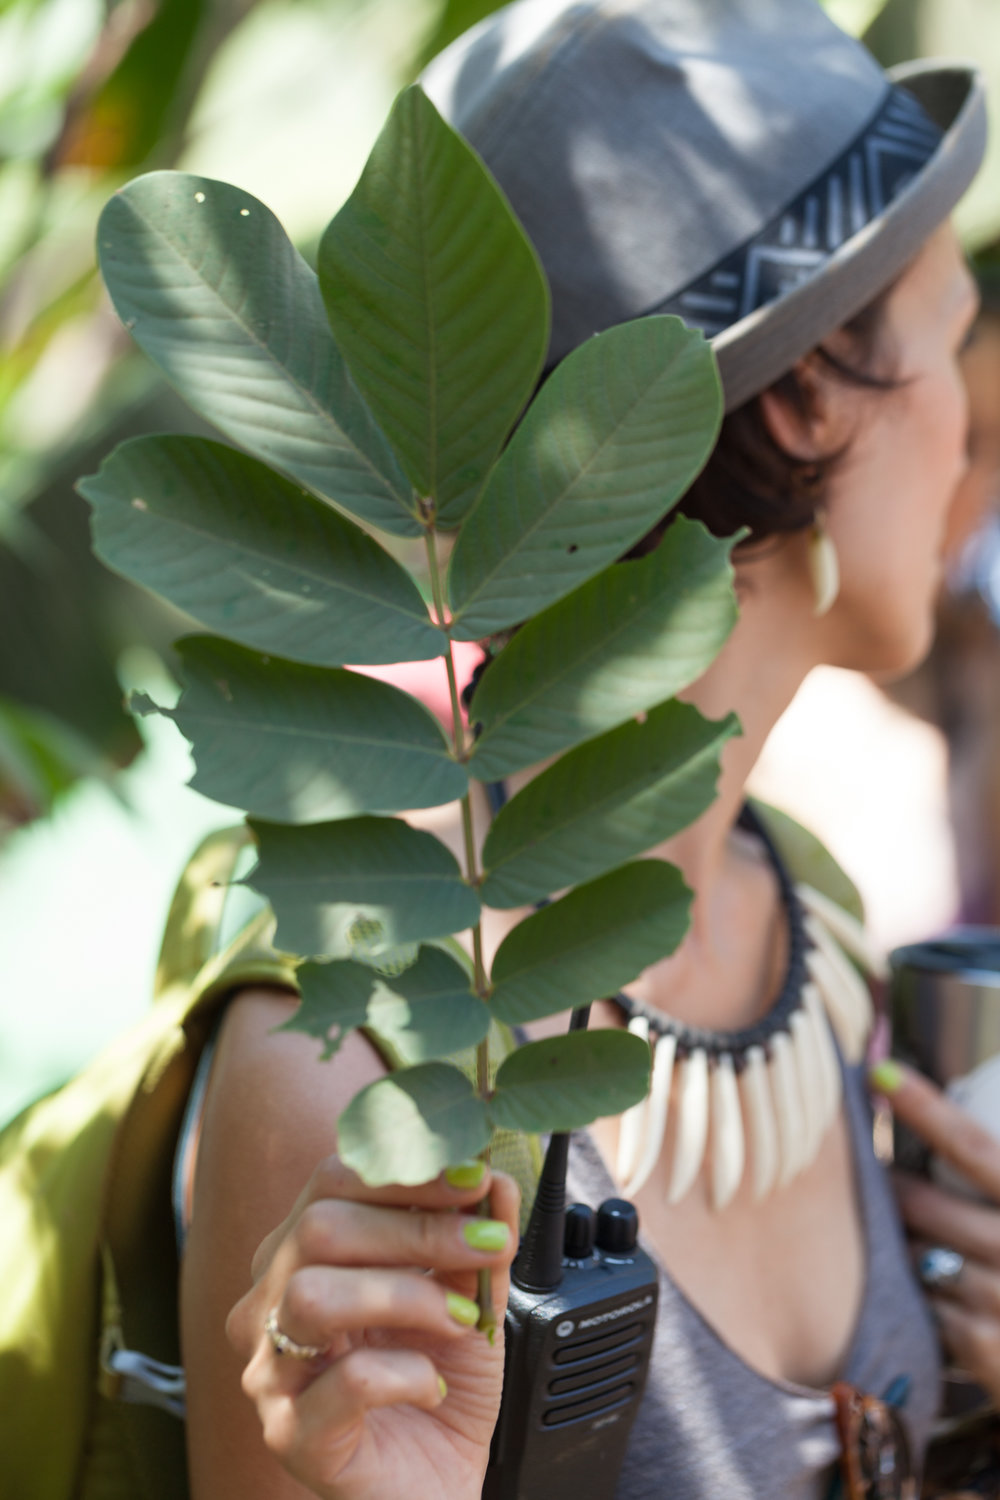 Sarah shared that this compound leaf was from a  Senna  tree, and is particularly good as a laxative.